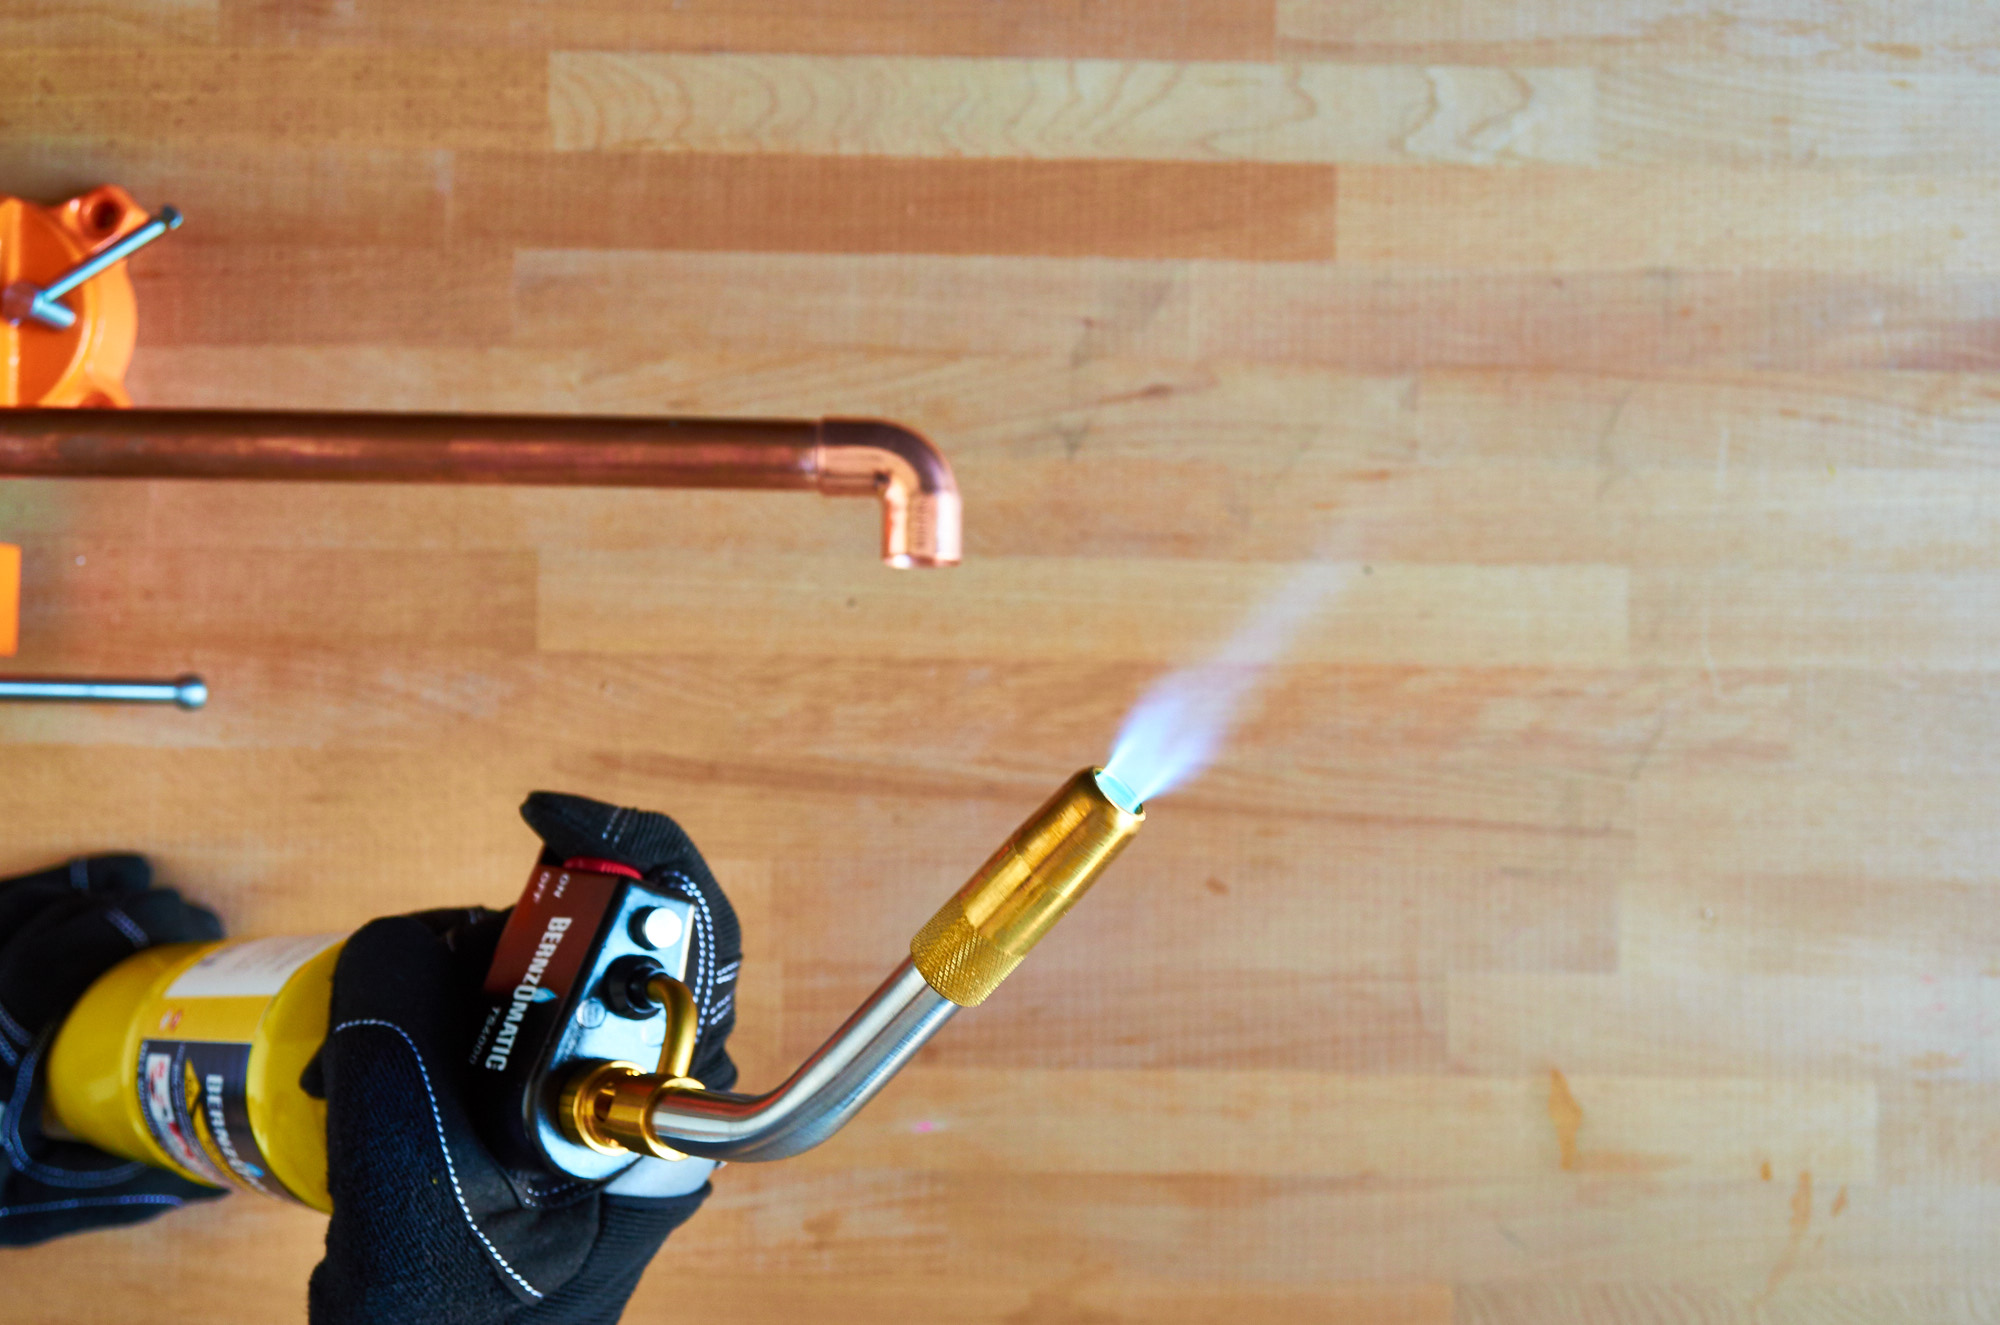 Turn on your blowtorch